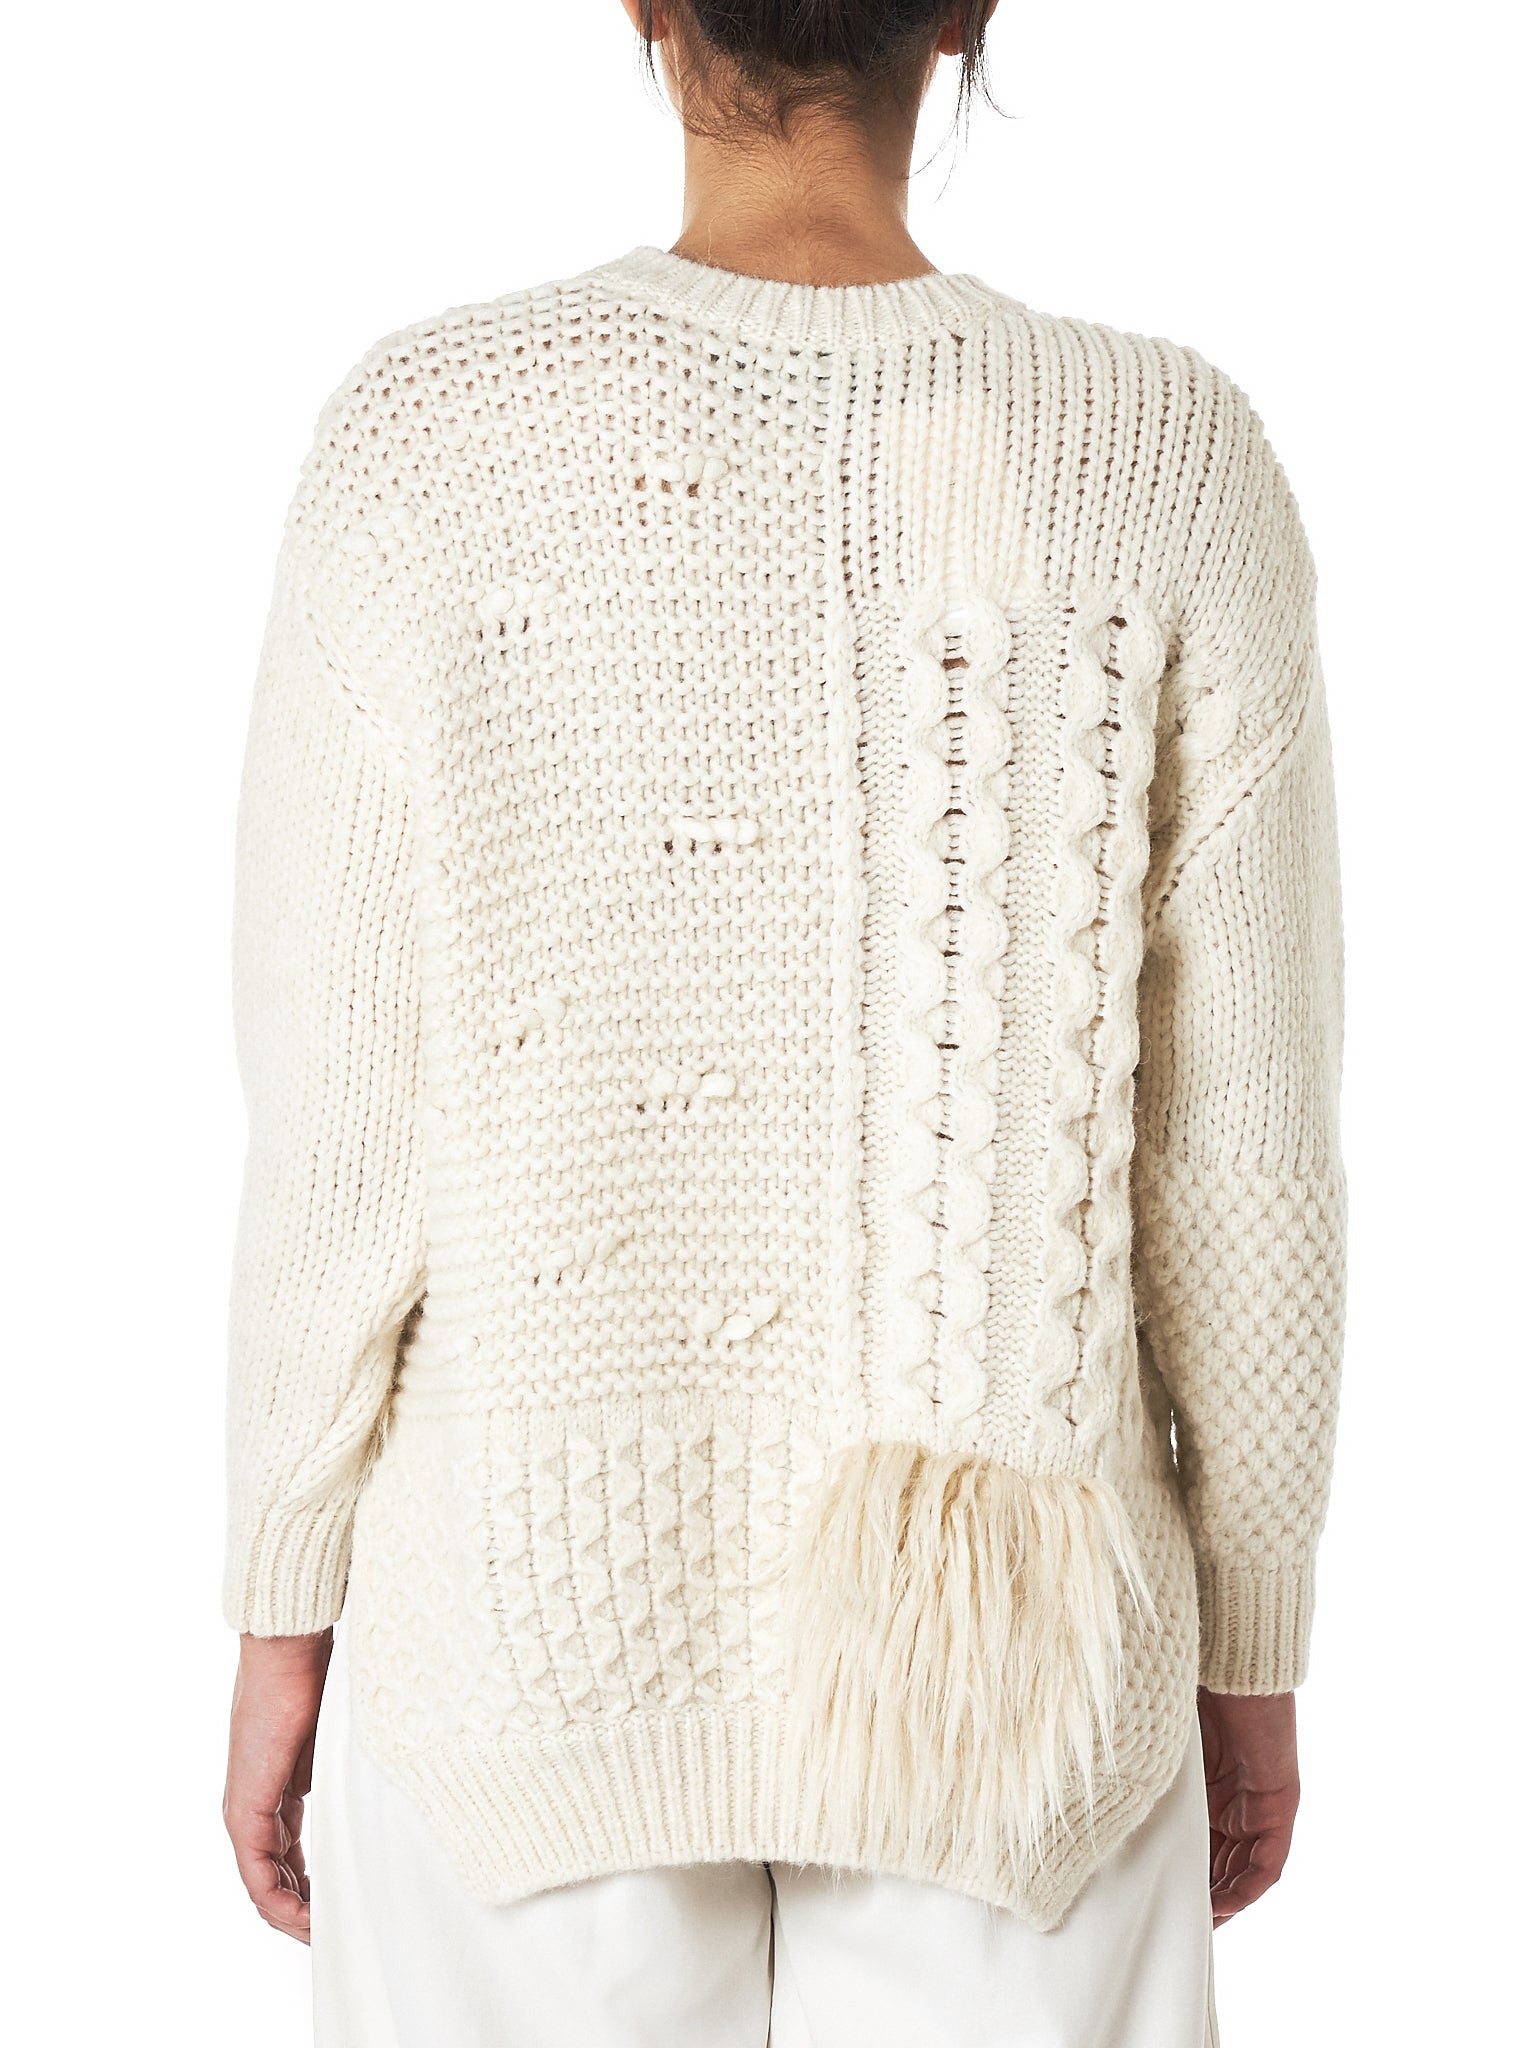 Simone Rocha Sweater - Hlorenzo Back